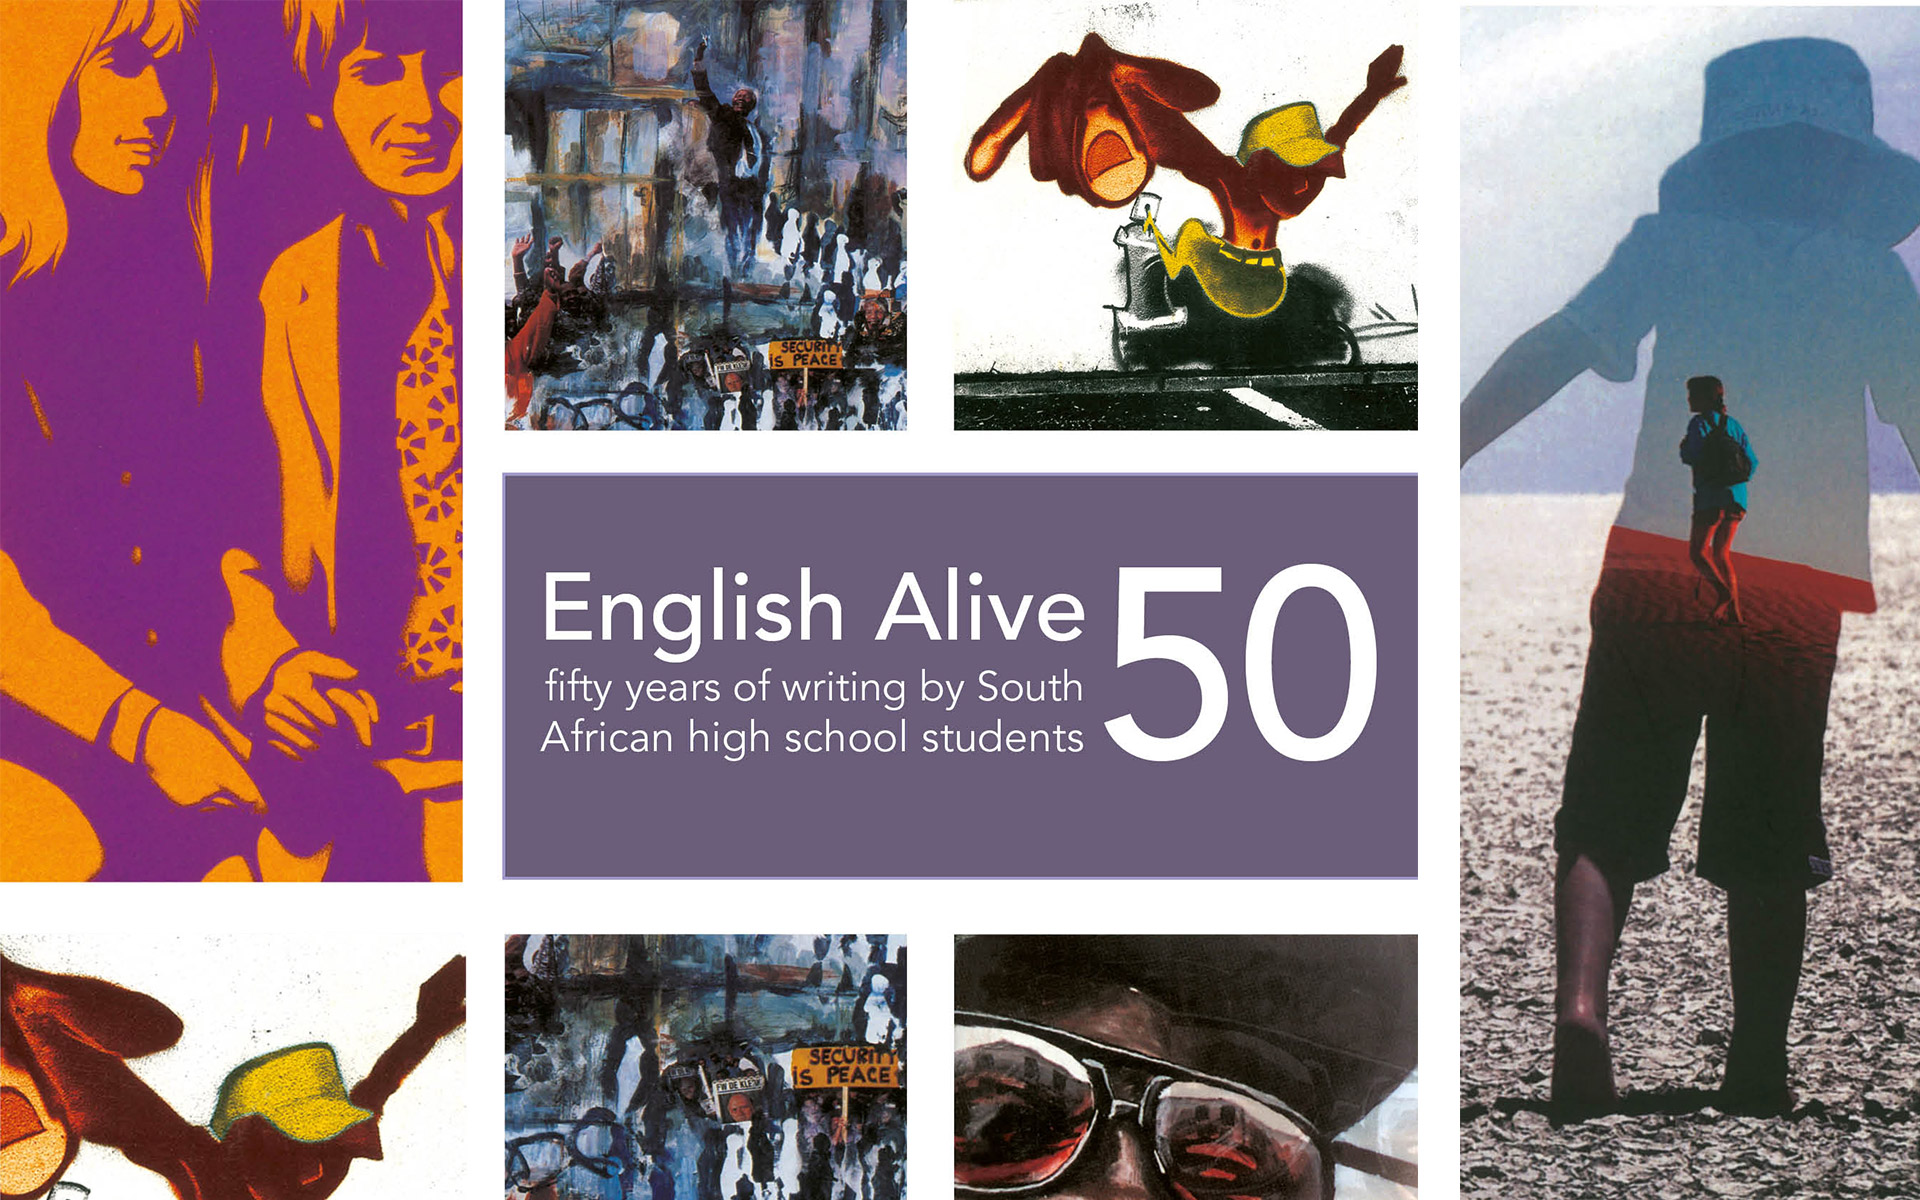 ENGLISH ALIVE 50 YEARS